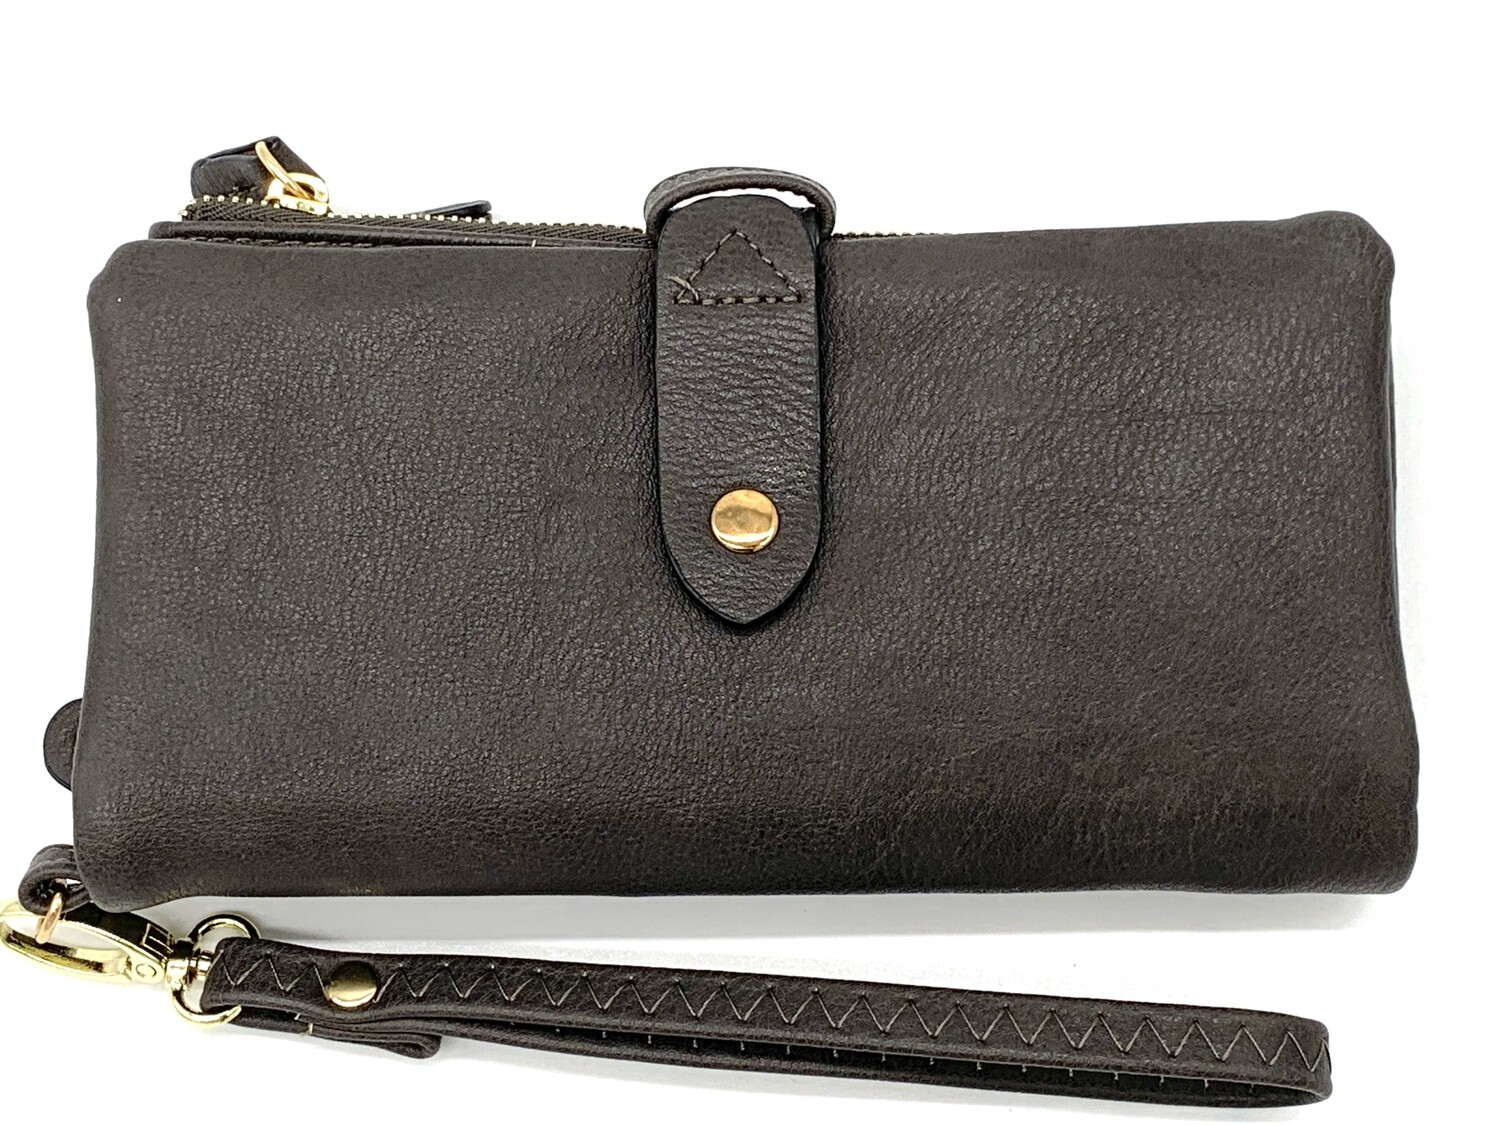 5268 Cell Phone Wristlet/Wallet dk gray